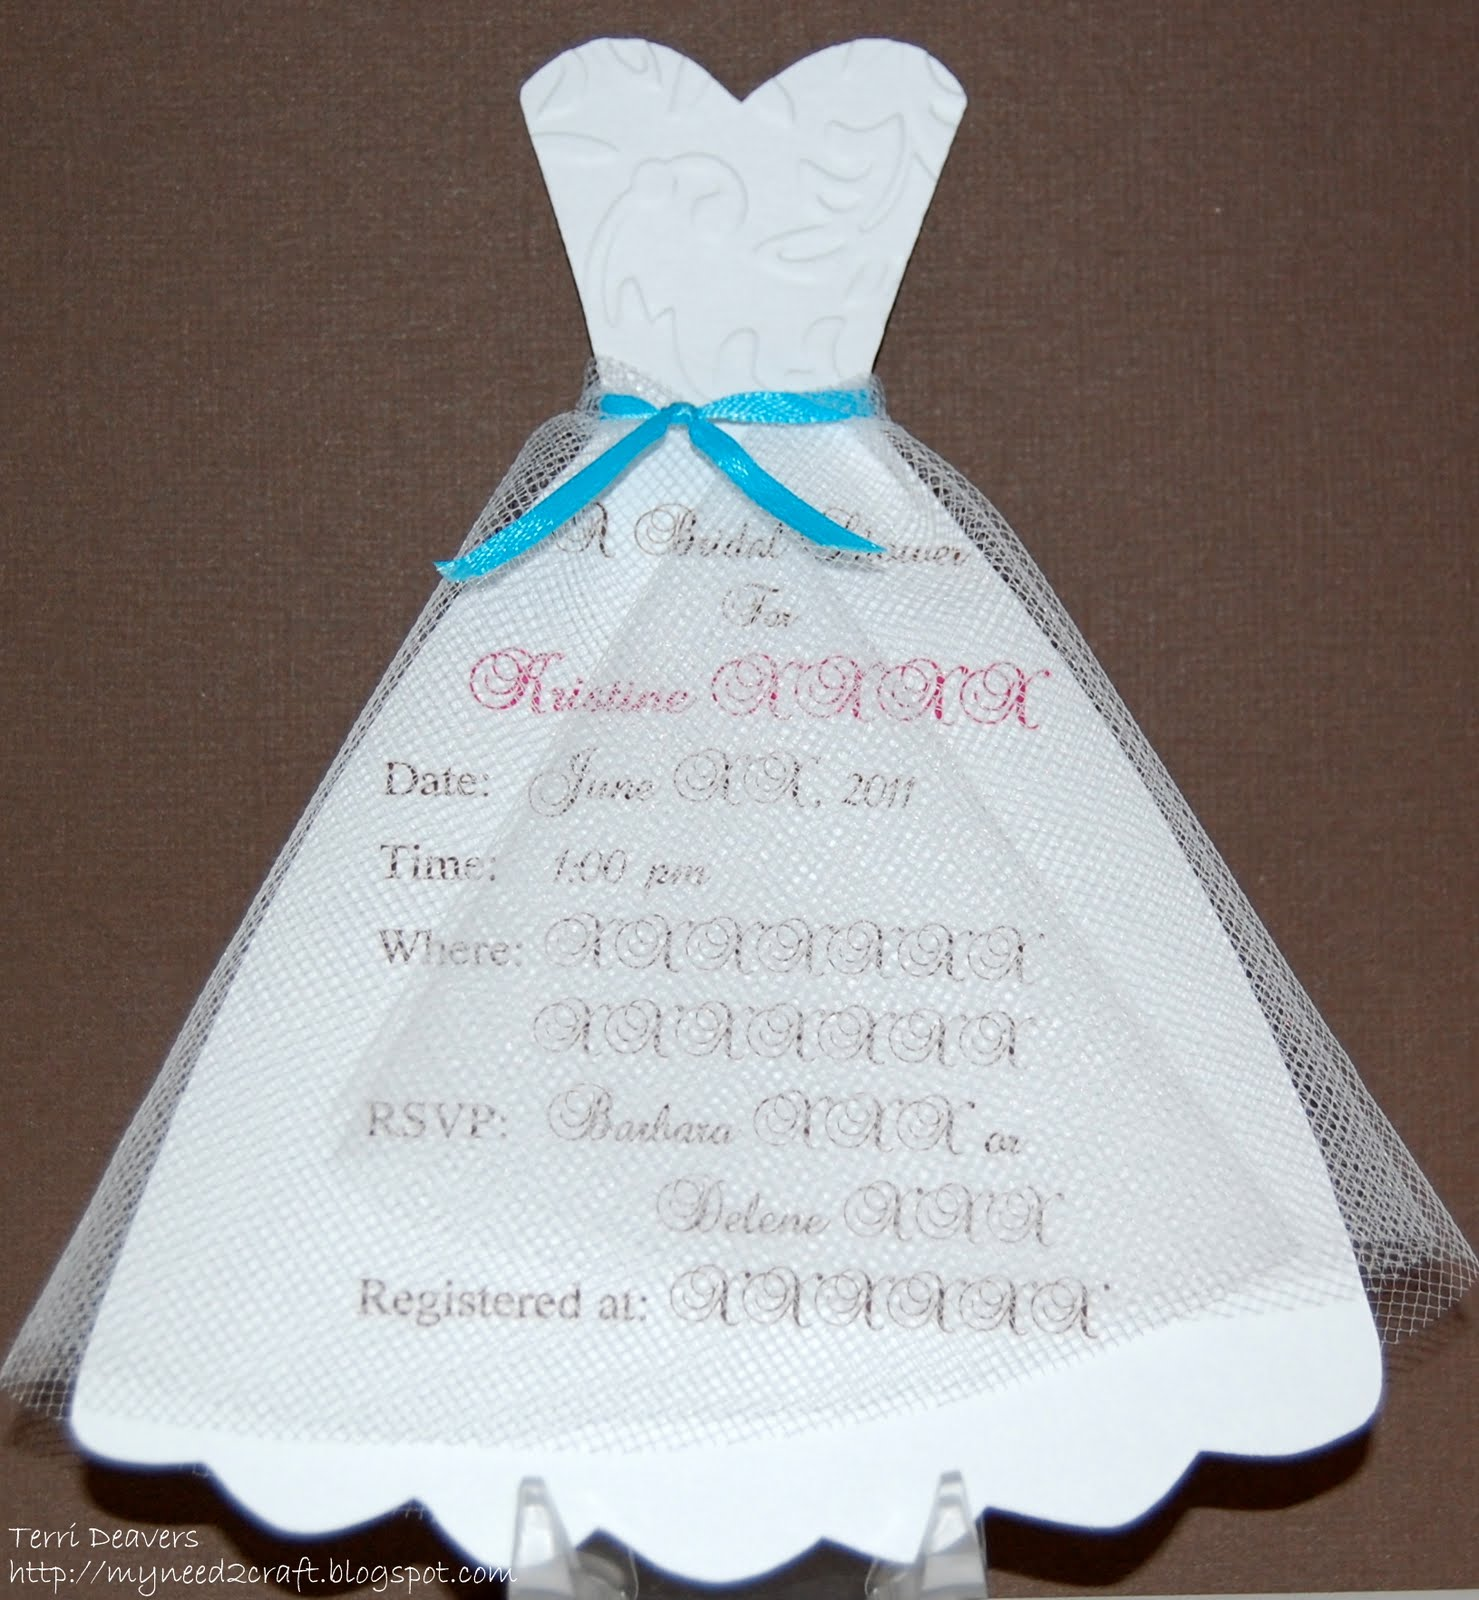 MyNeed2Craft by Terri Deavers: Bridal Shower Invitations...